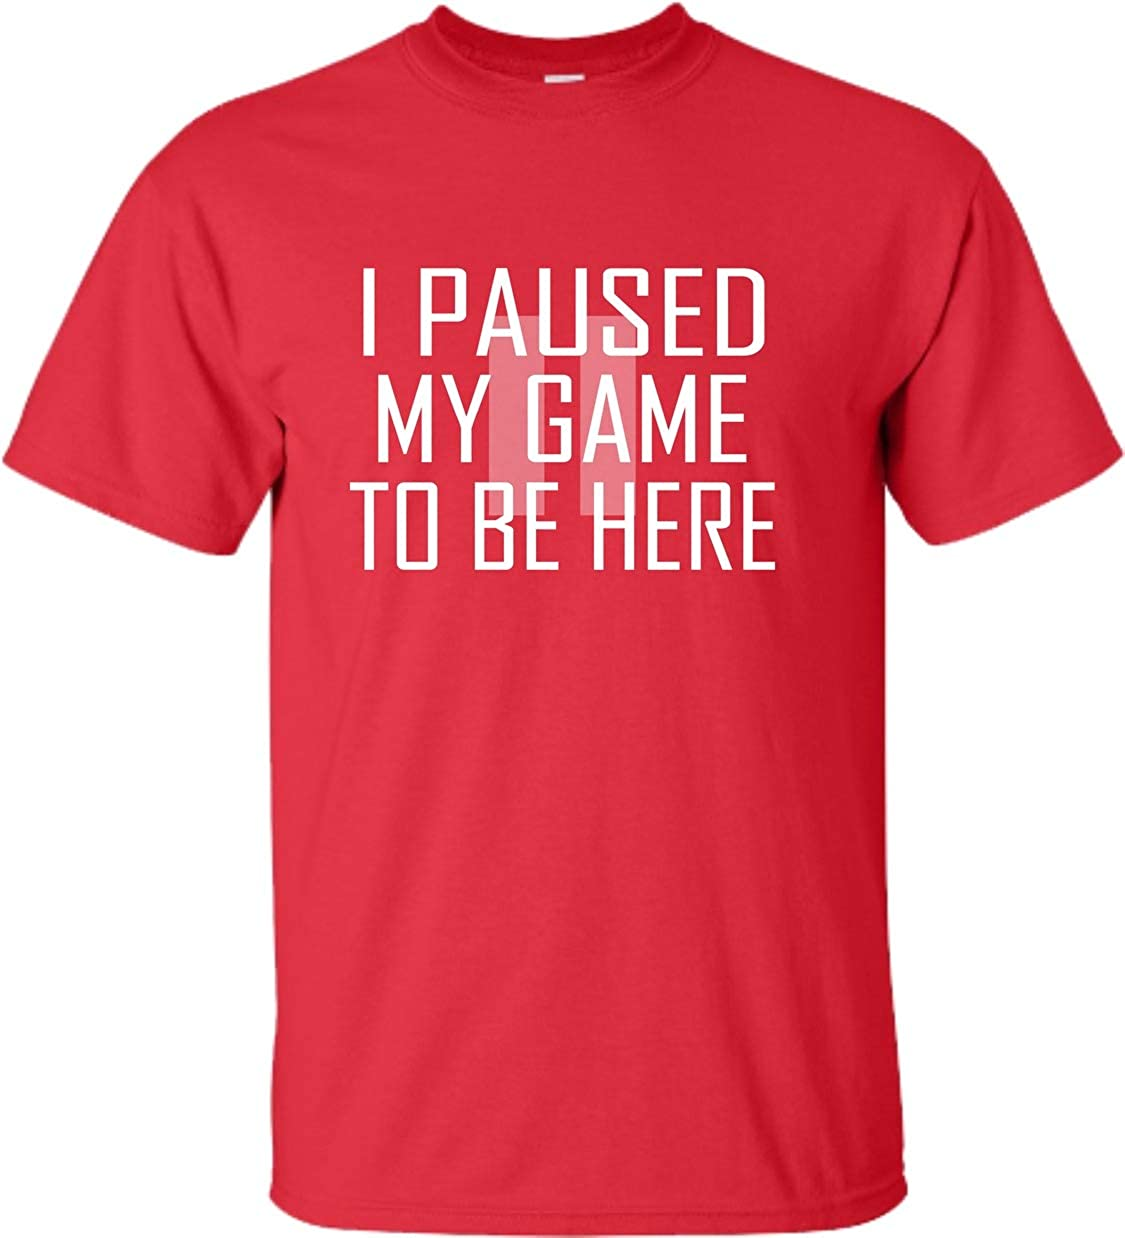 Go All Out Adult Classy I Paused My Game to Be Here T-Shirt